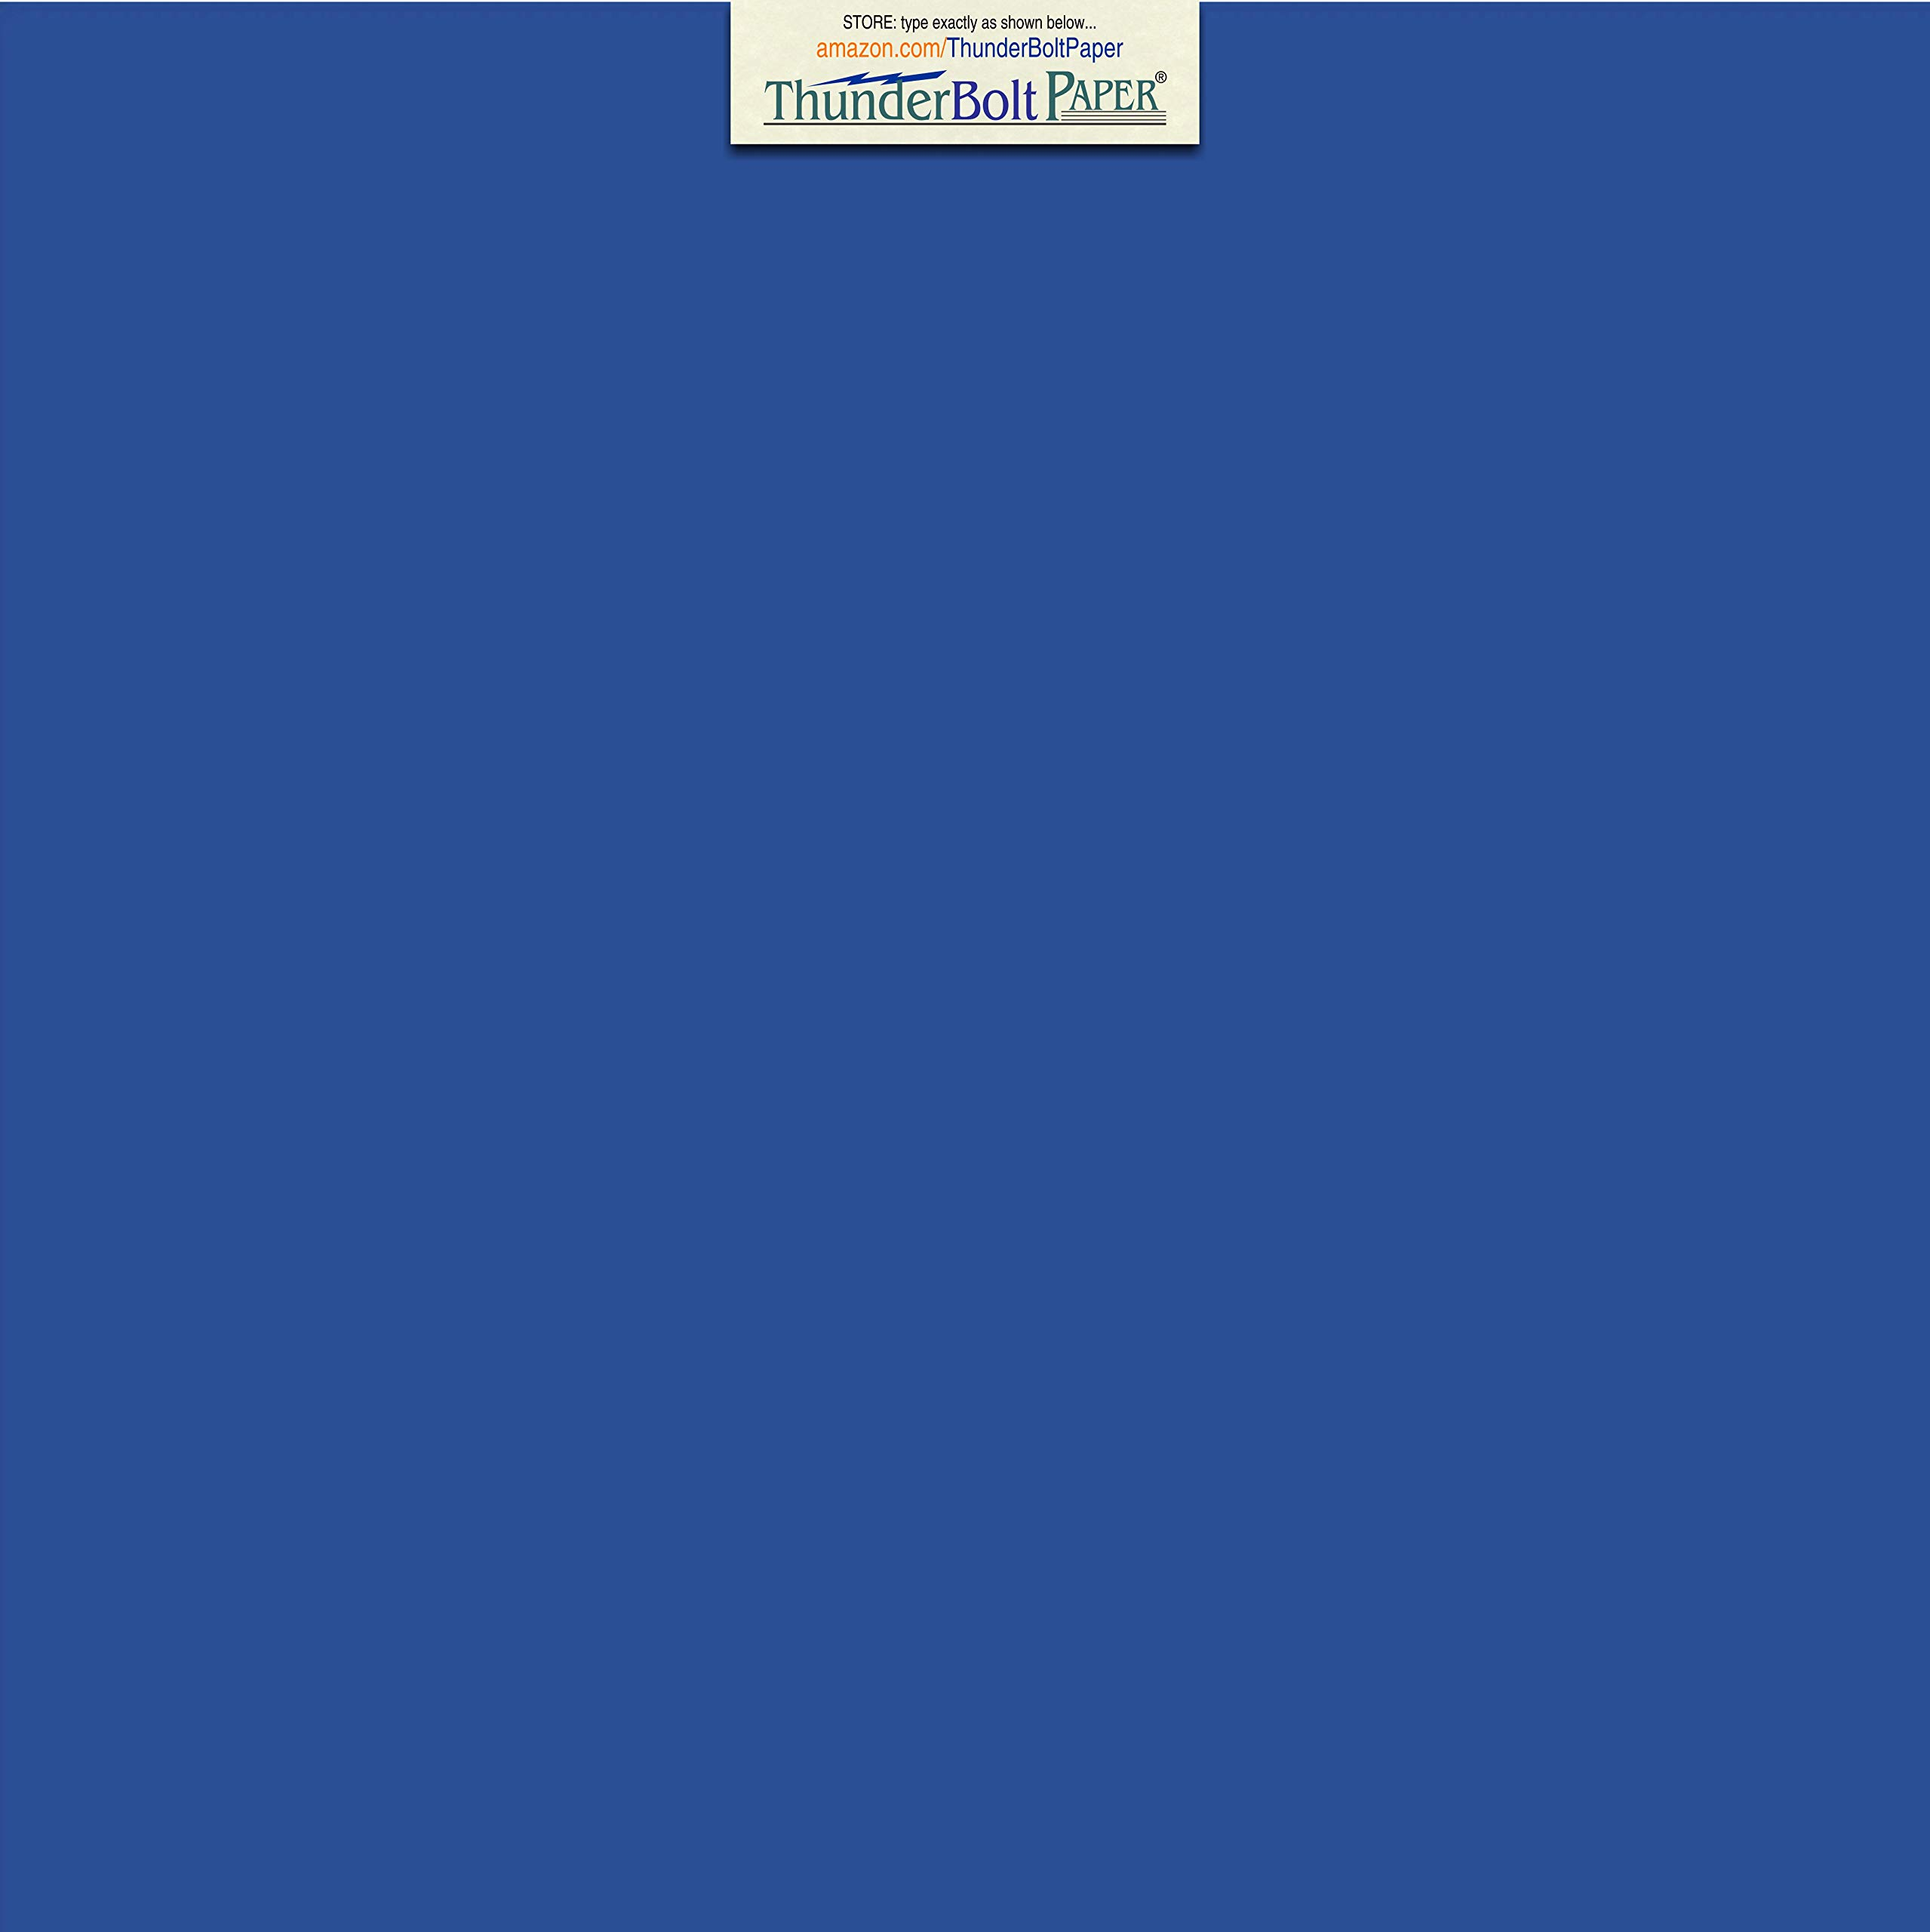 100 Bright Royal Blue Color 65# Cover/Card Paper Sheets 12 X 12 Inches Scrapbook Album Cover Size - 65 lb/pound Light Weight Cardstock - Quality Smooth Paper Surface by ThunderBolt Paper